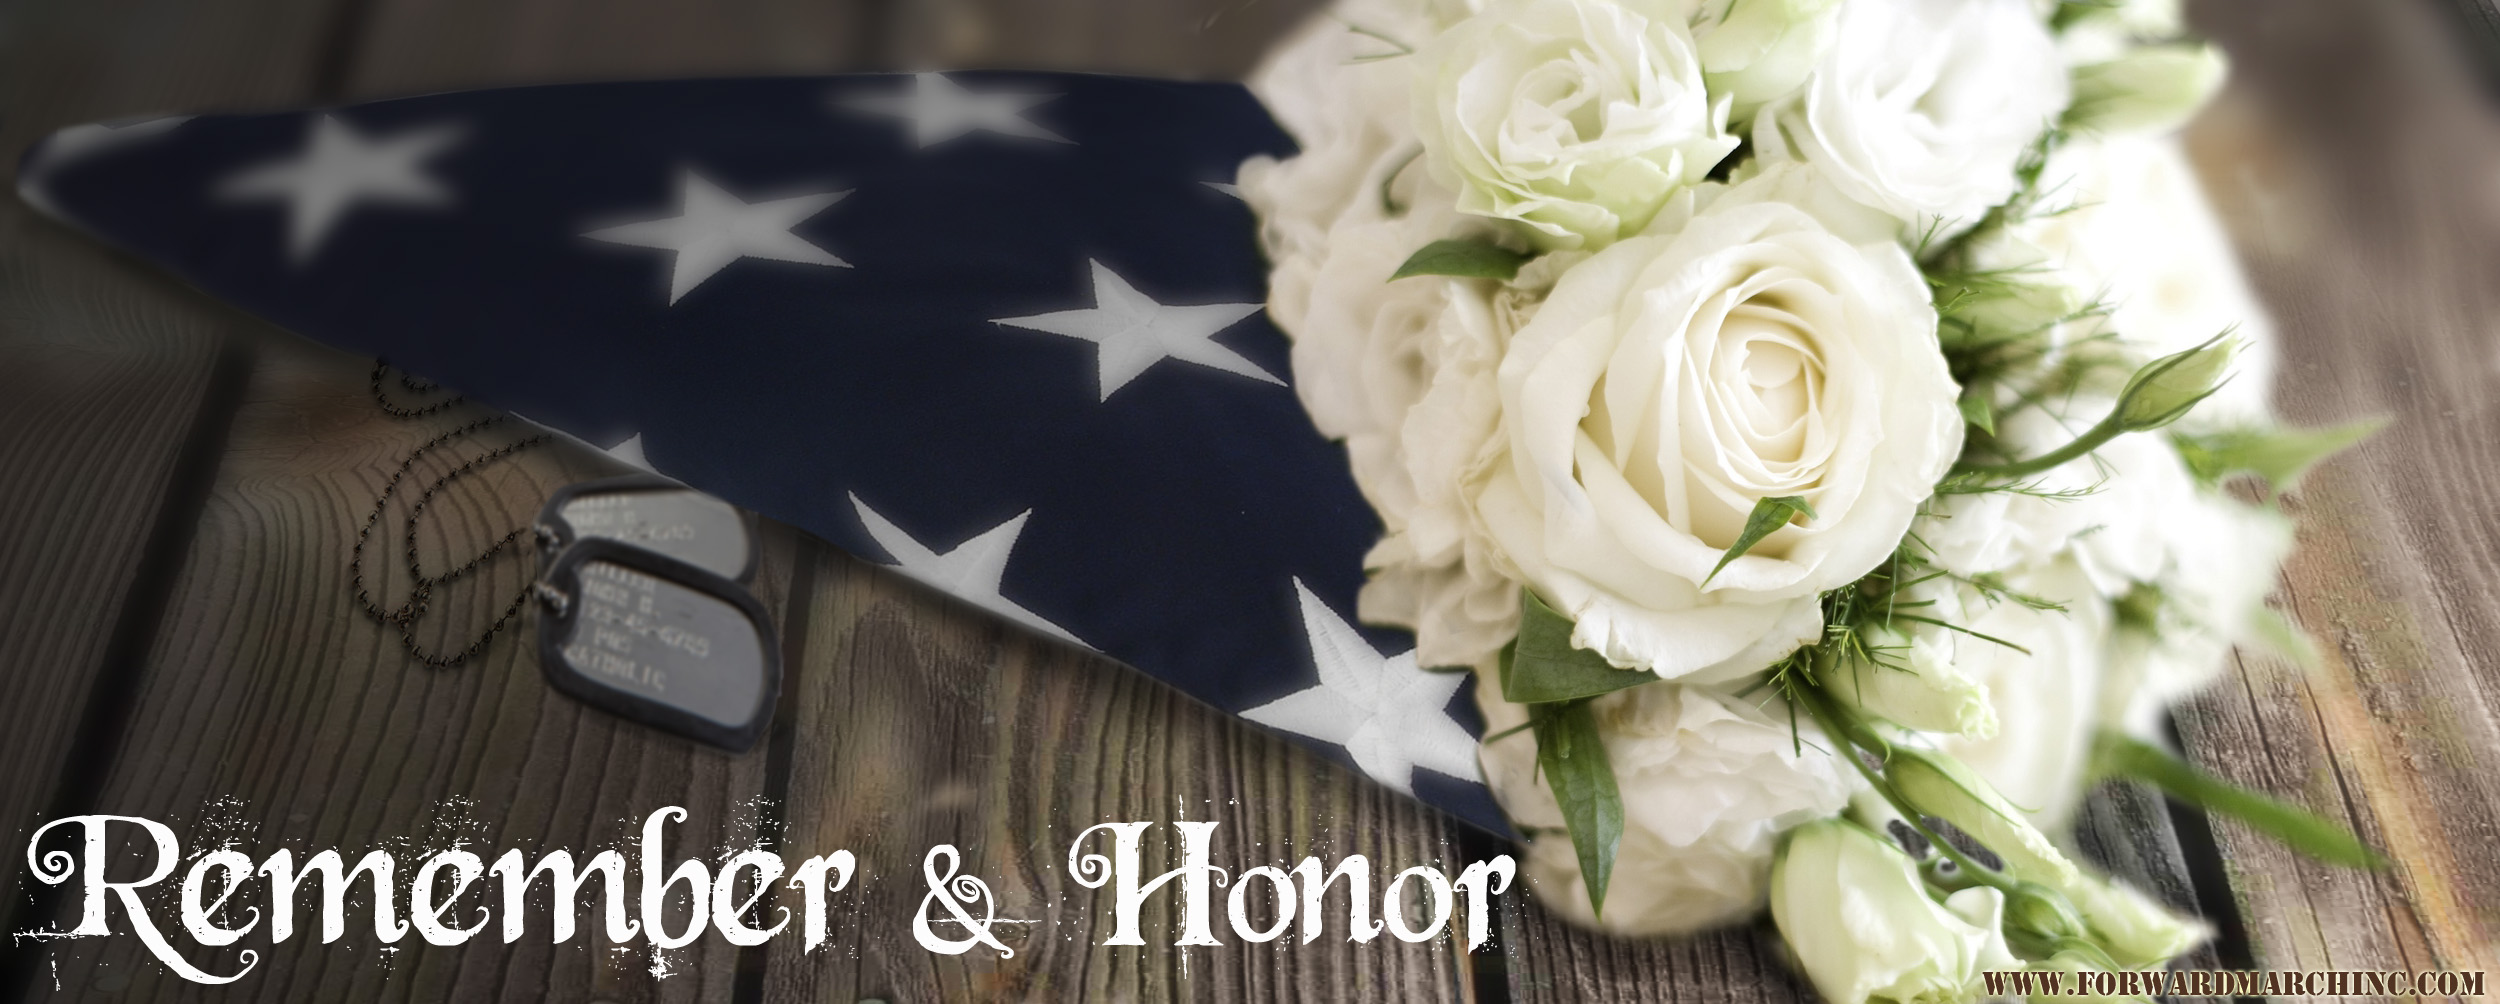 American flag with white roses beside it